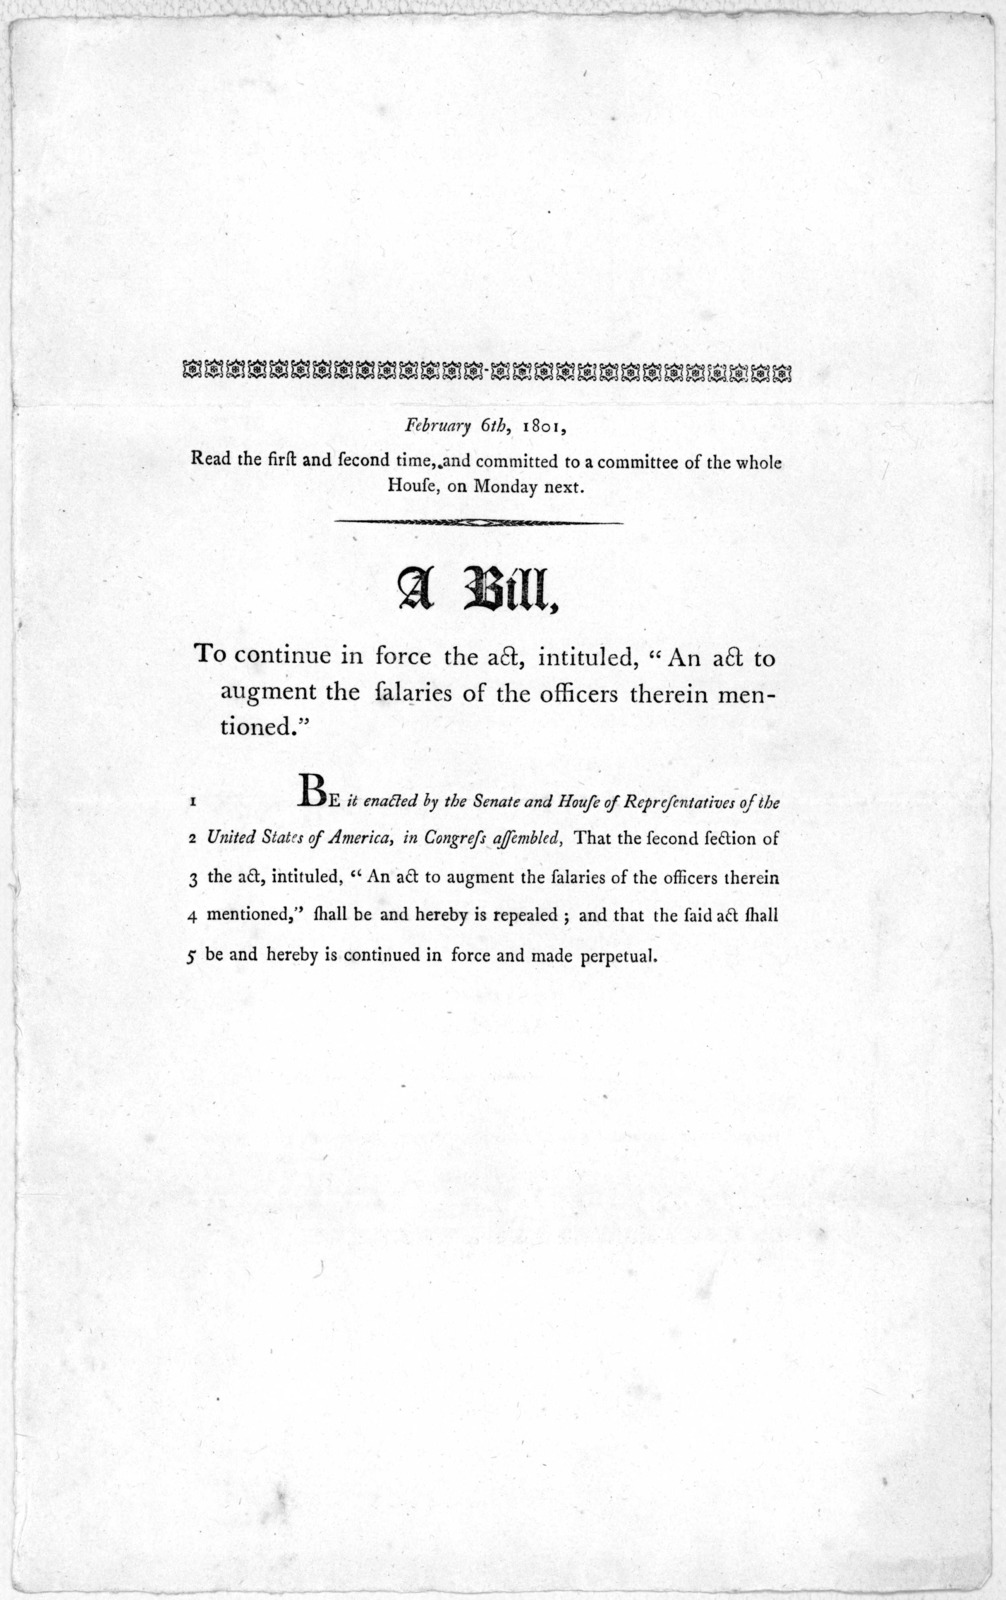 """February 6th, 1801. Read the first and second time, and committed to a committee of the whole House, on Monday next. A bill, to continue in force the act, intituled, """"An act to augment the salaries of the officers therein mentioned."""" [Washington"""